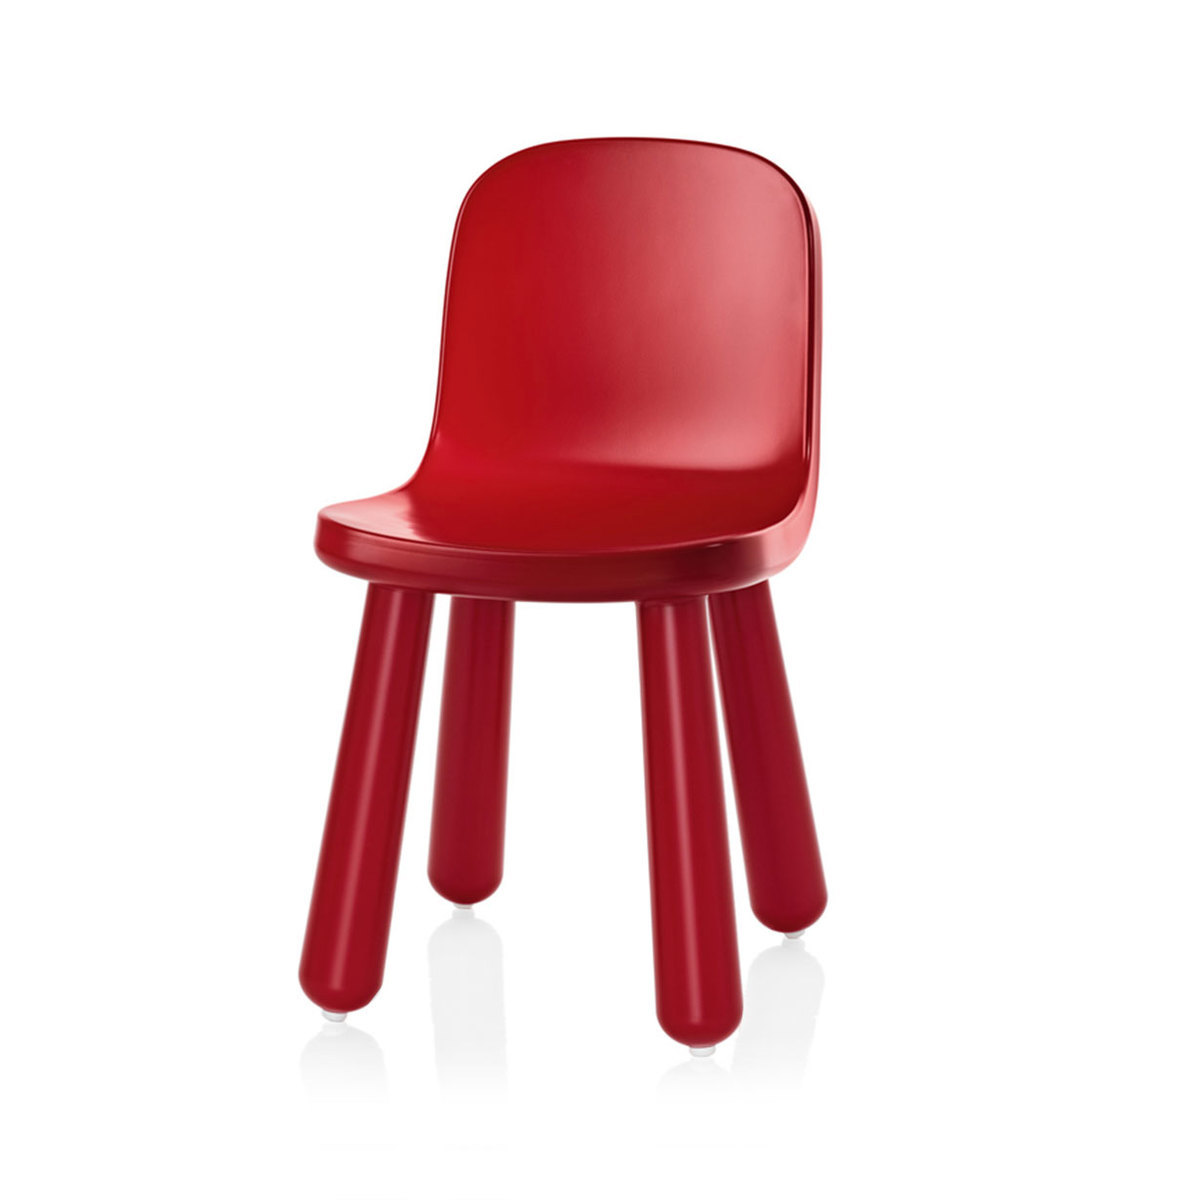 Still chair by magis lovethesign for Magis chair